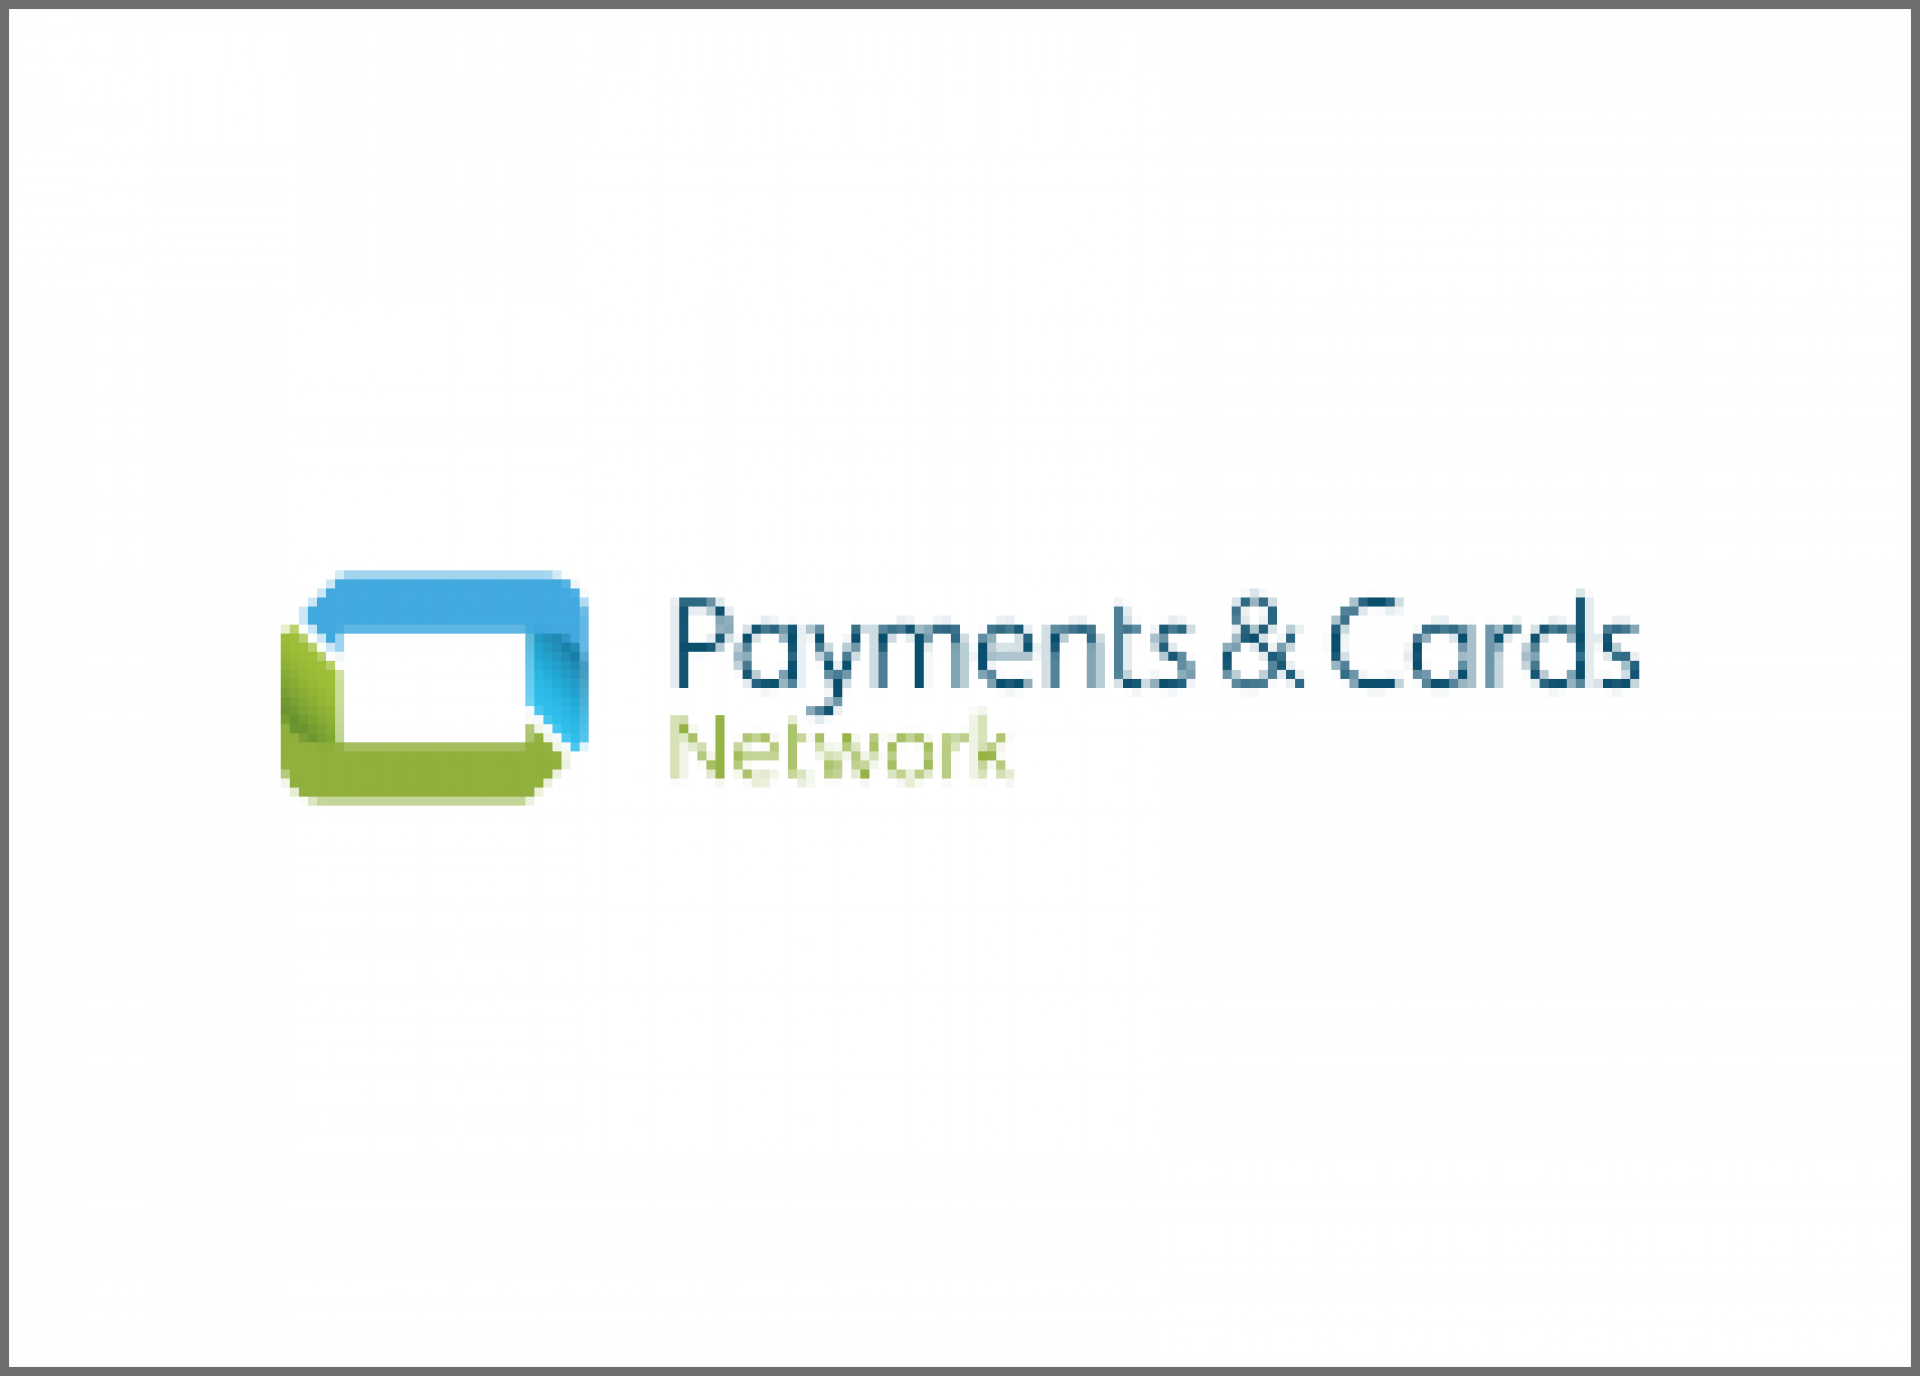 Payments & Cards Network